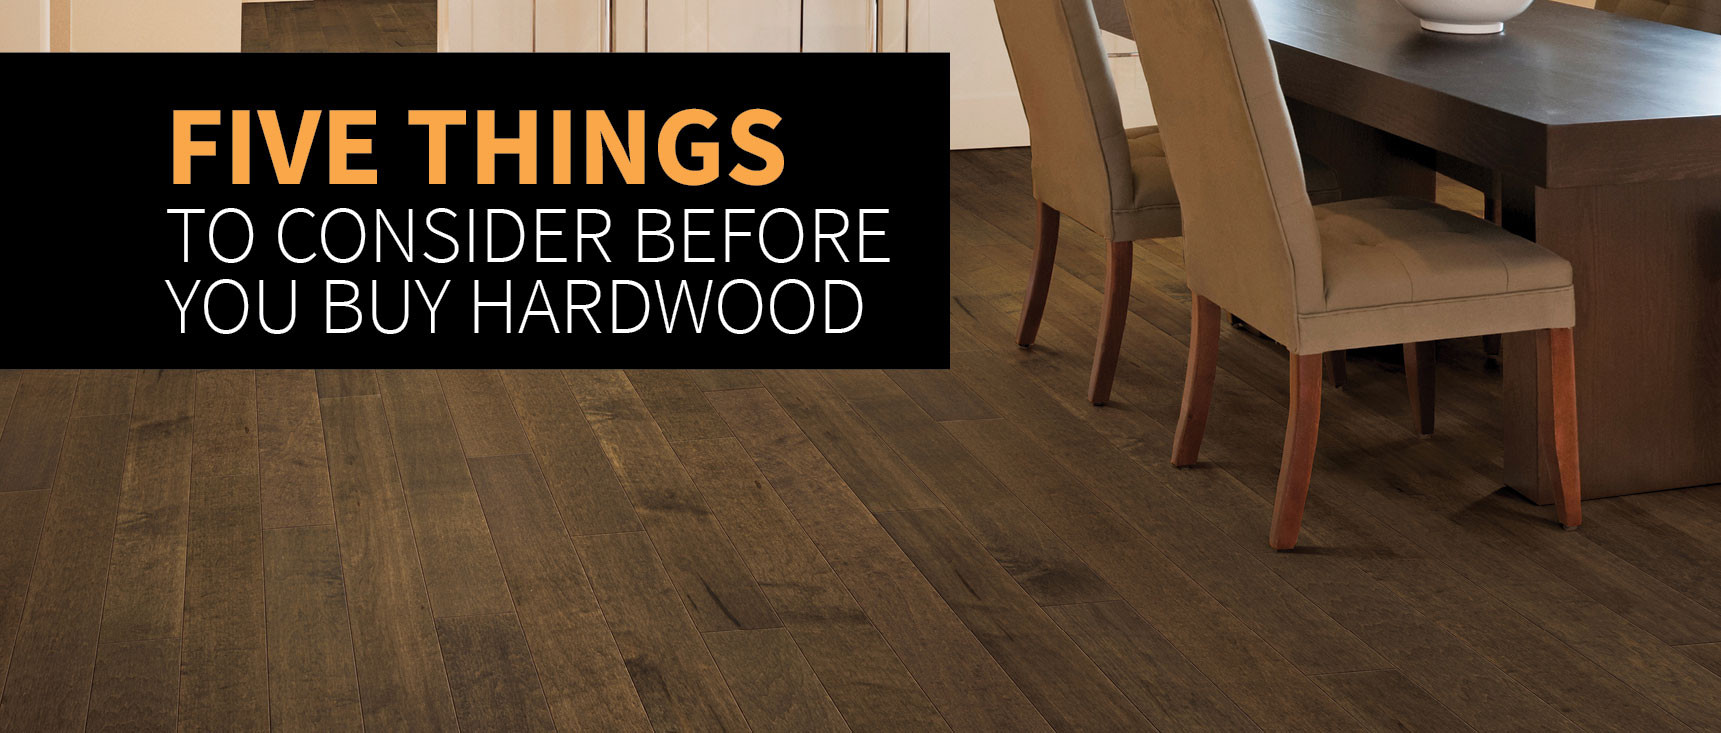 Crescent Hardwood Flooring New orleans Of Welcome to End Of the Roll Brand Name Flooring Low Prices Always Regarding Flooring